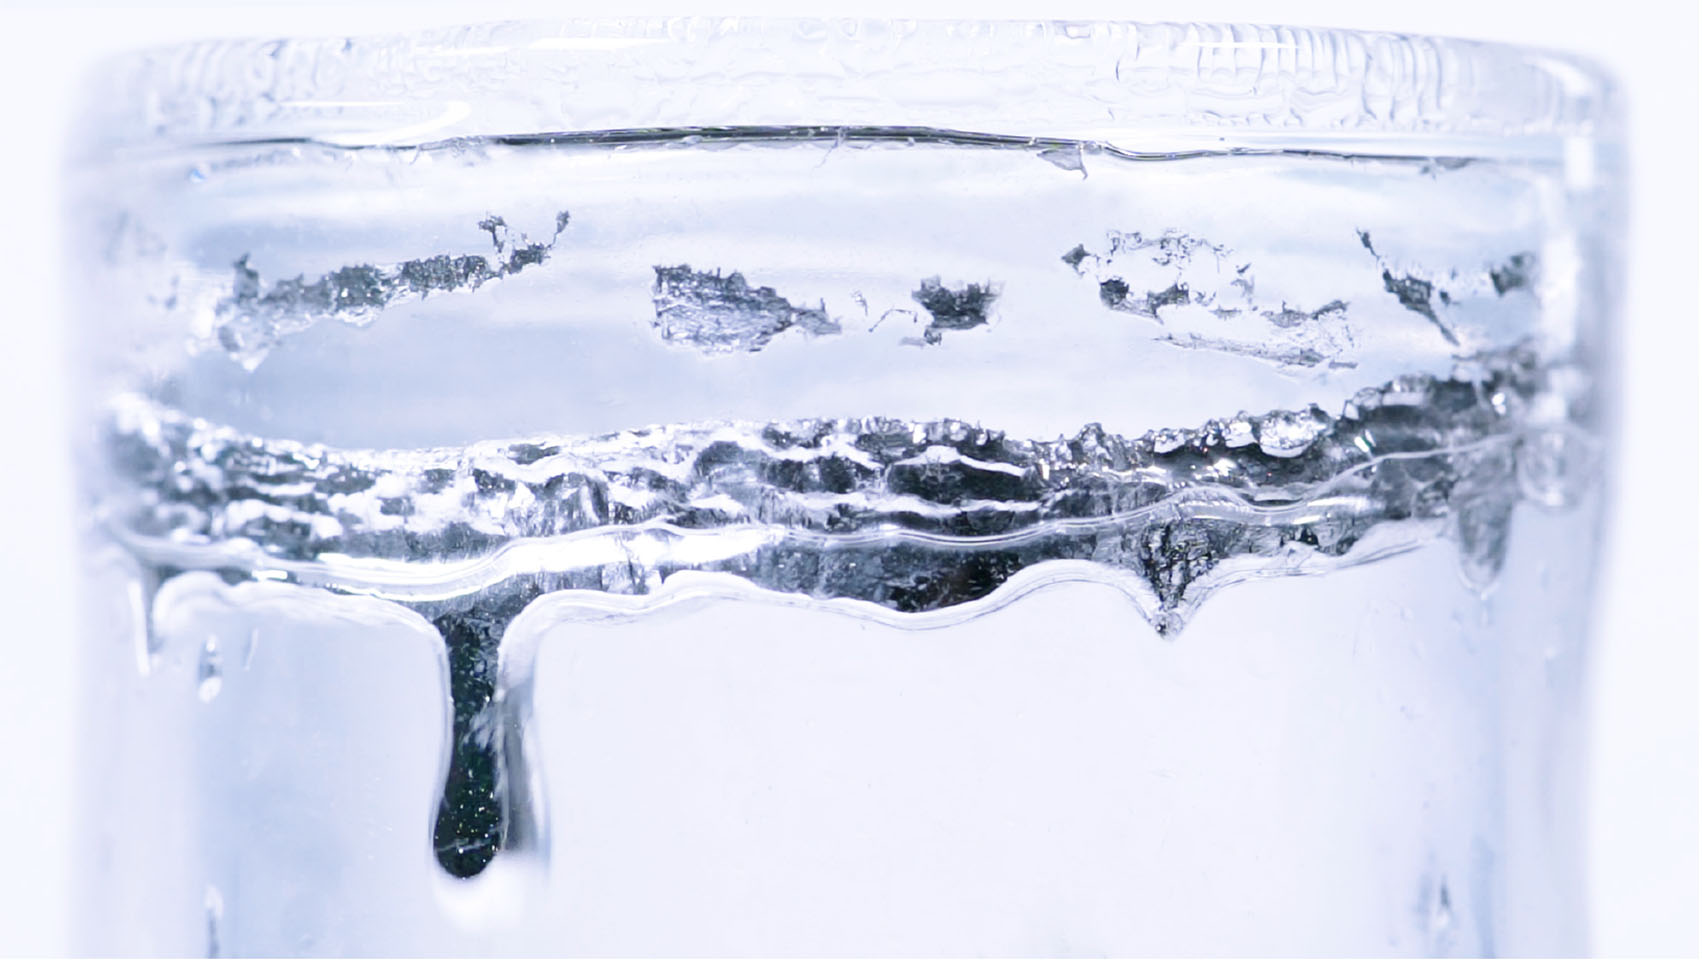 Gallium transforms from solid to liquid state, when hot water is poured into a double-layered glass cup made by Sara Chyan